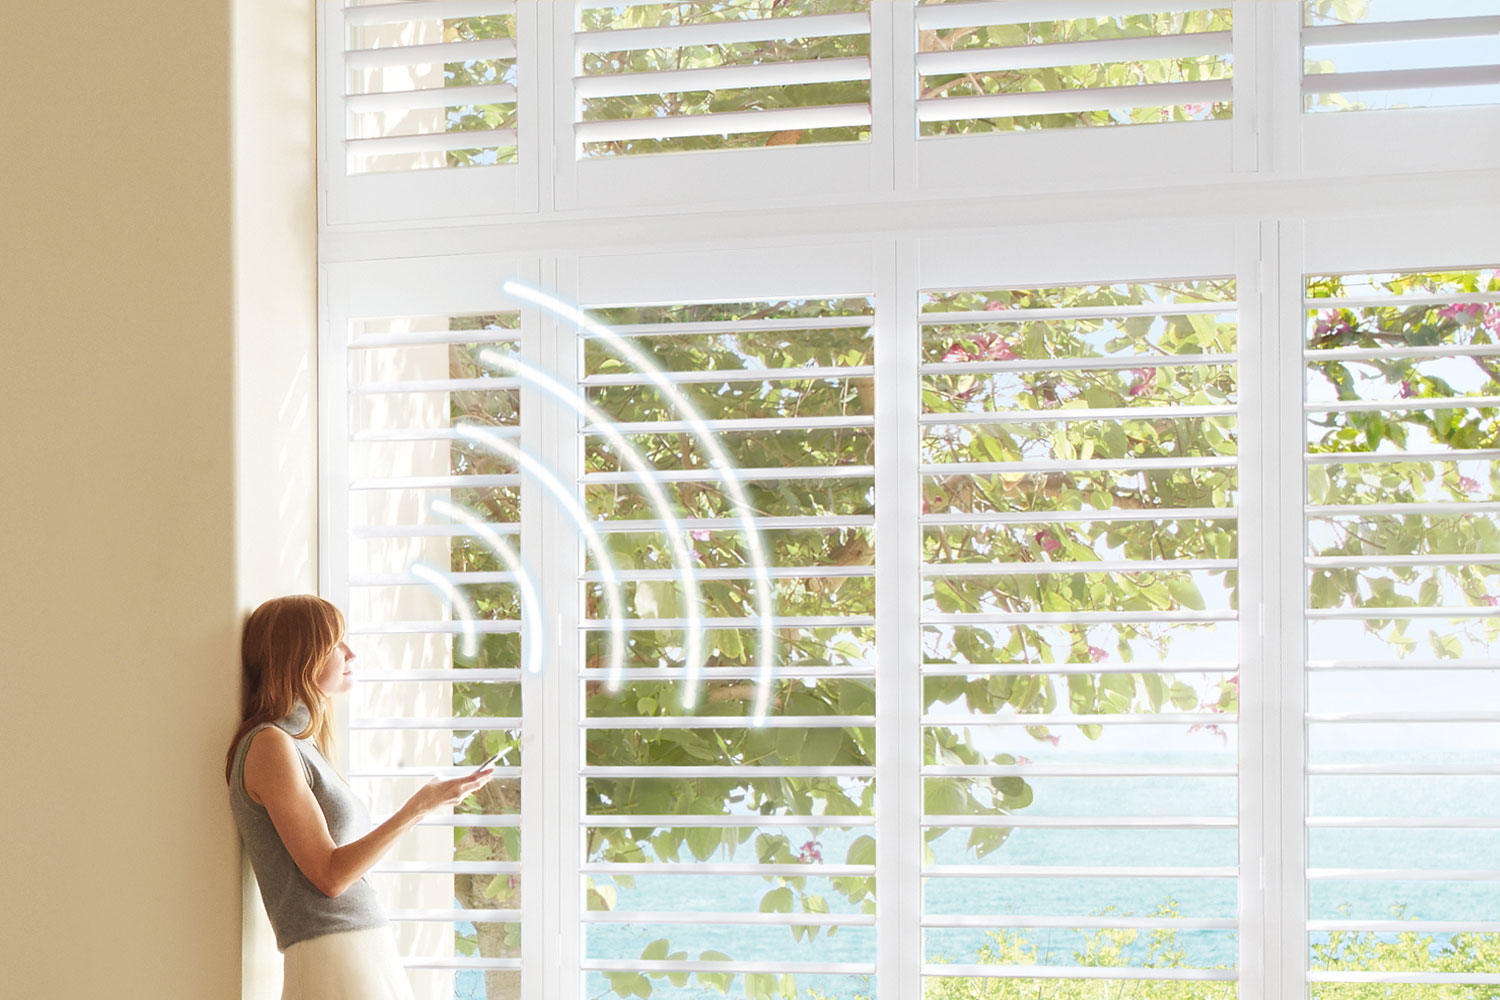 Smart Home Voice Commands - Palm Beach™ Polysatin™ Shutters